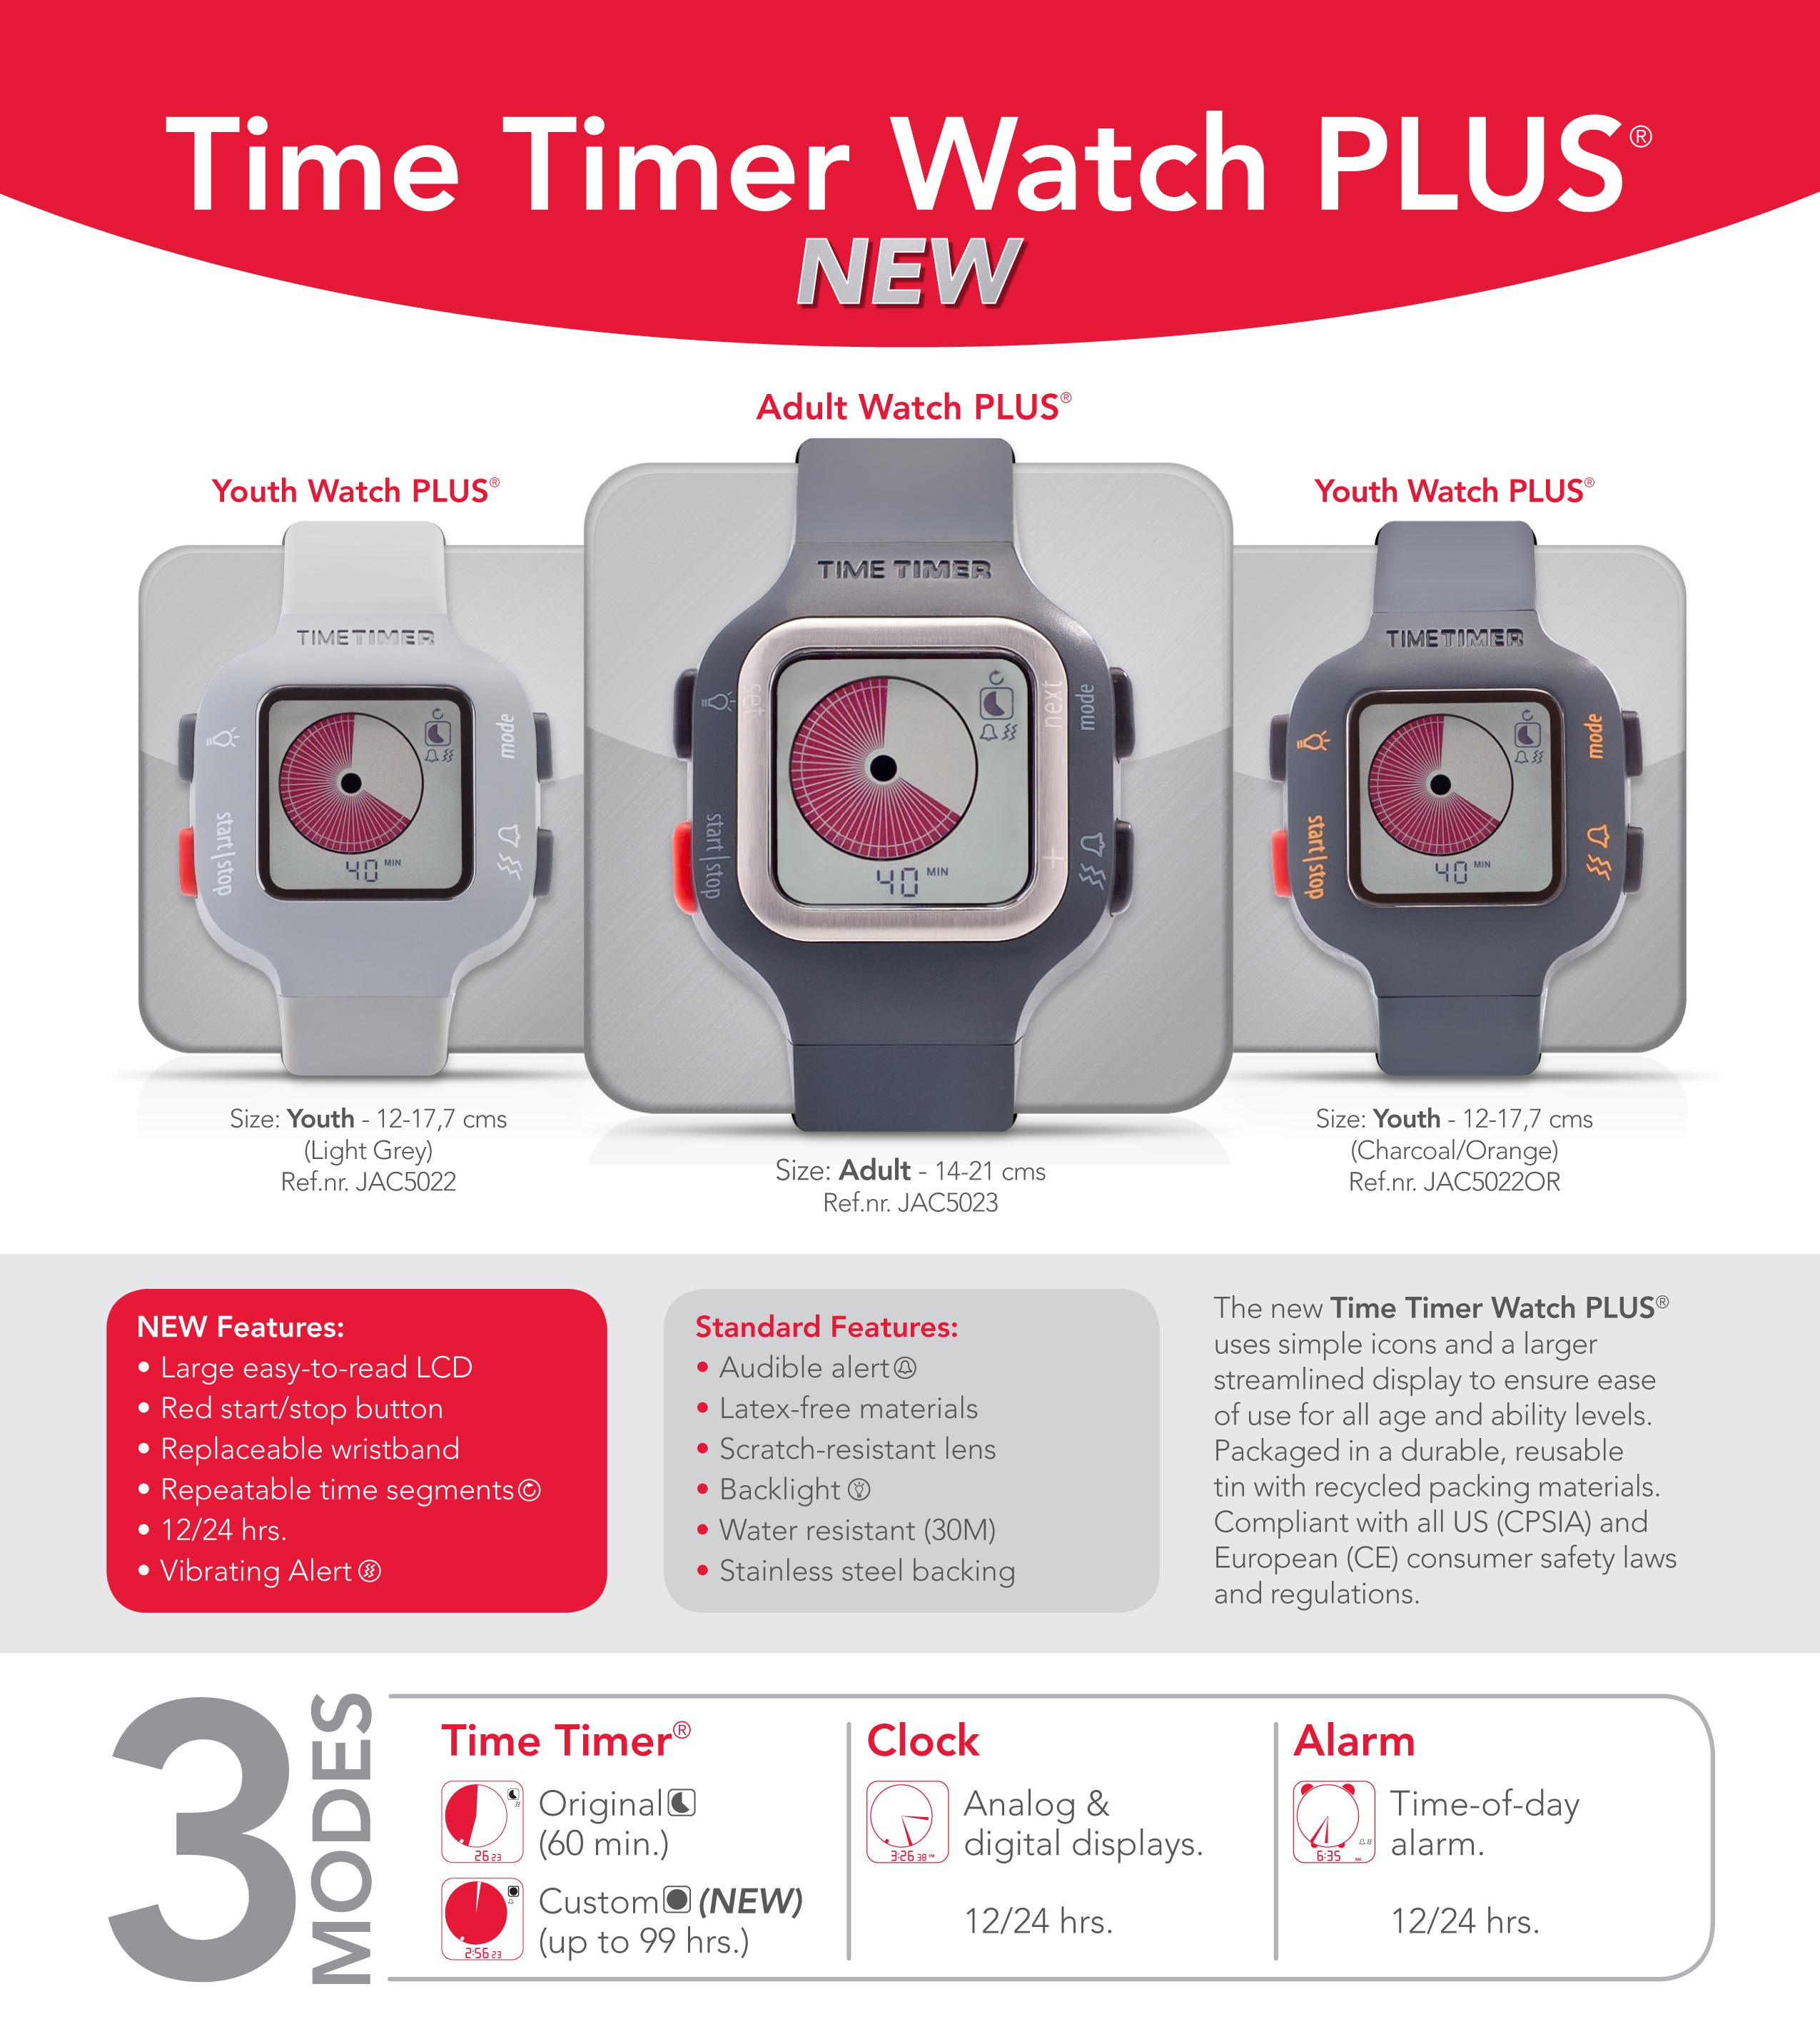 AssistData - Time Timer Watch Plus from Four Esses Aps - HMI